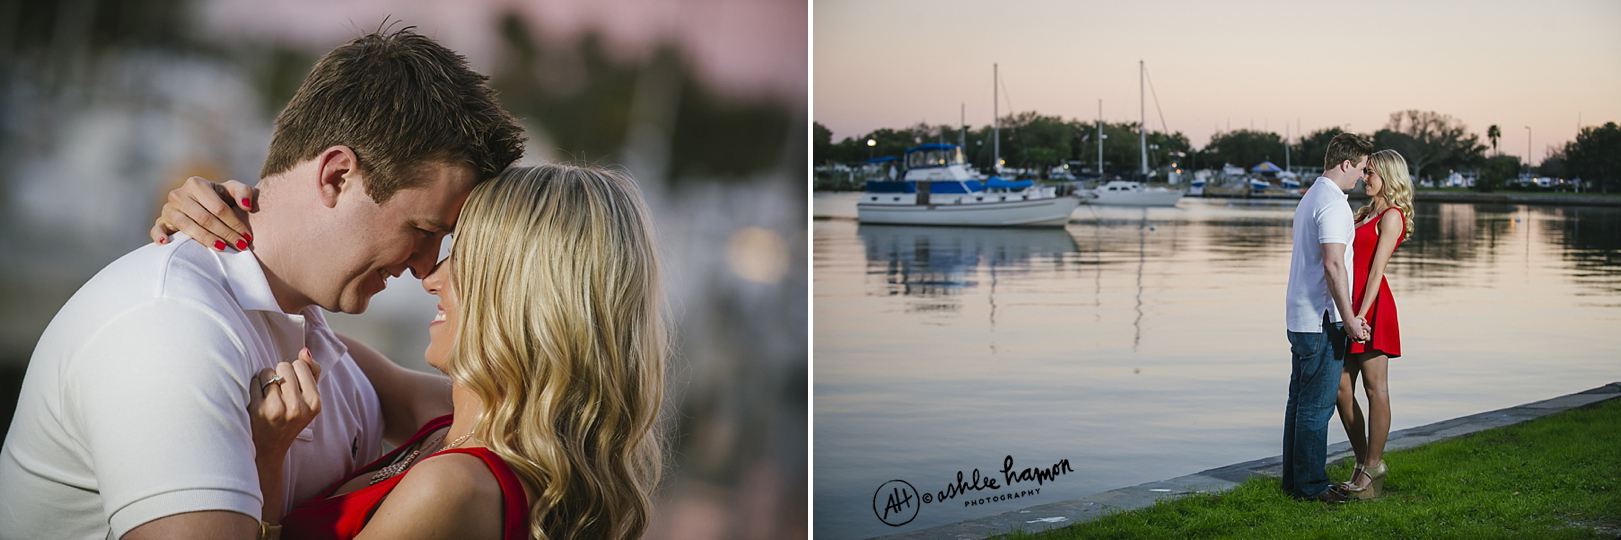 downtown st. pete waterfront engagement photos